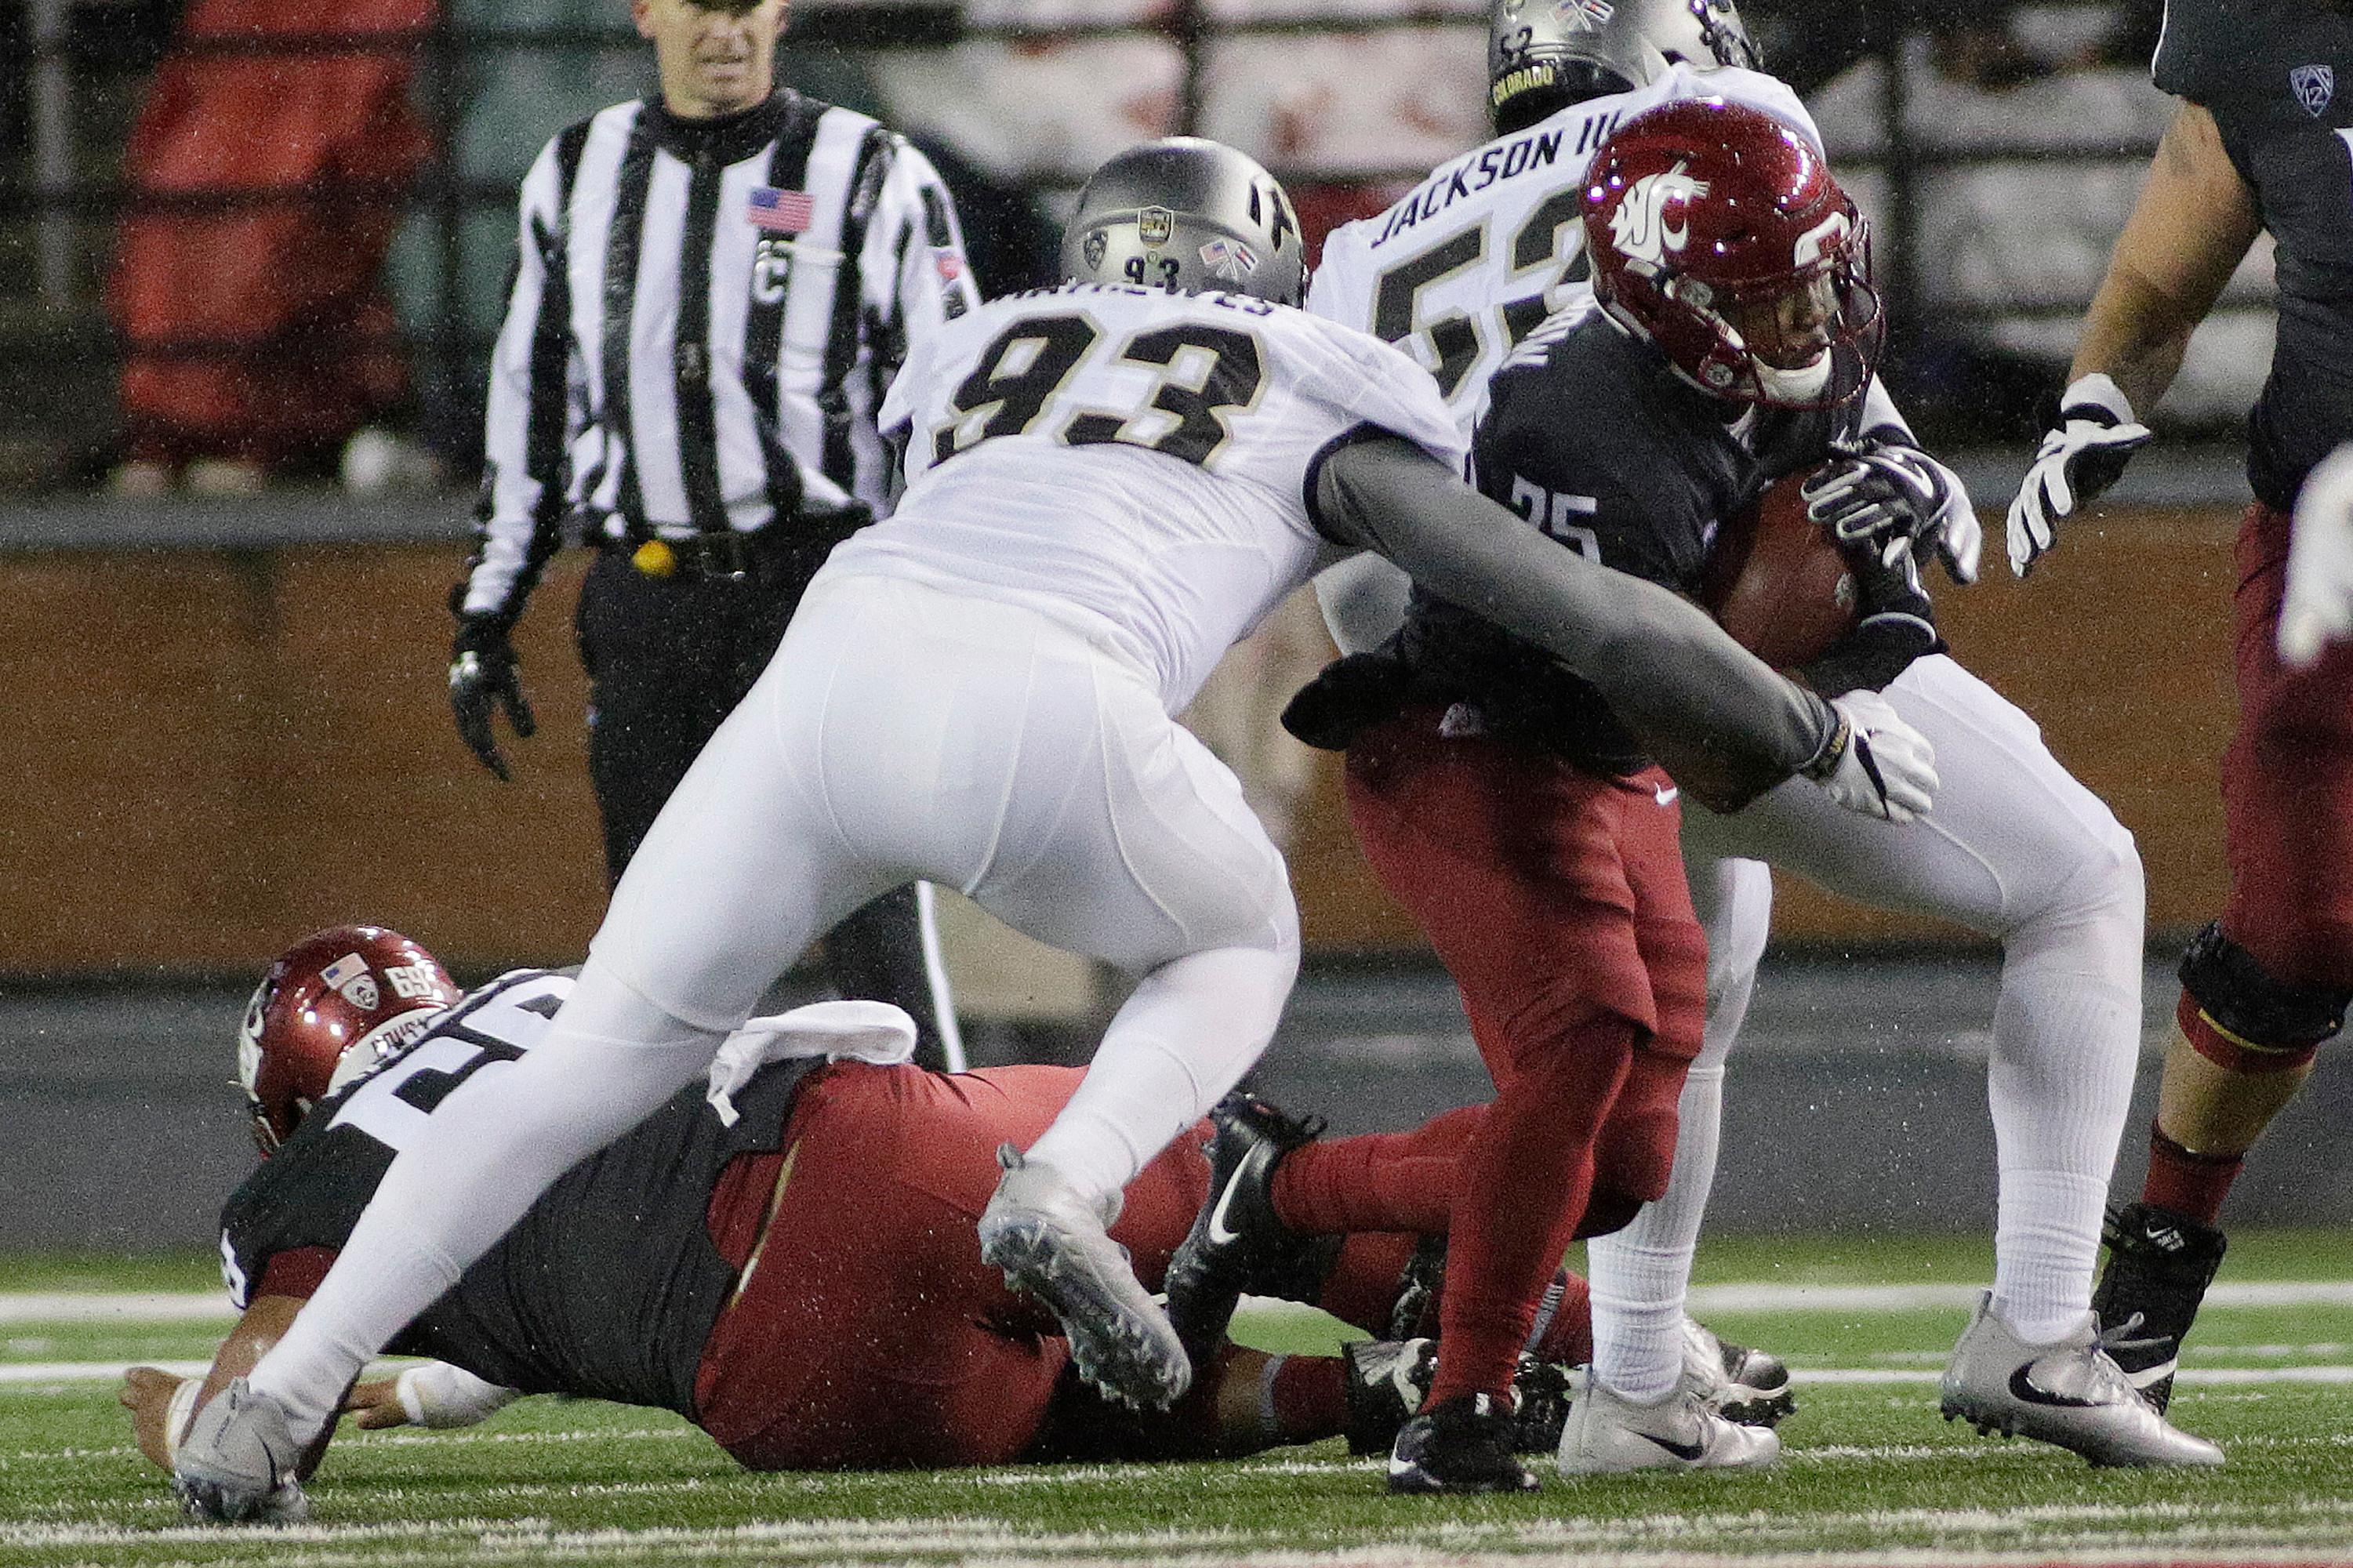 Colorado linebacker Michael Mathewes (93) tackles Washington State running back Jamal Morrow (25) during the first half of an NCAA college football game in Pullman, Wash., Saturday, Oct. 21, 2017. (AP Photo/Young Kwak)